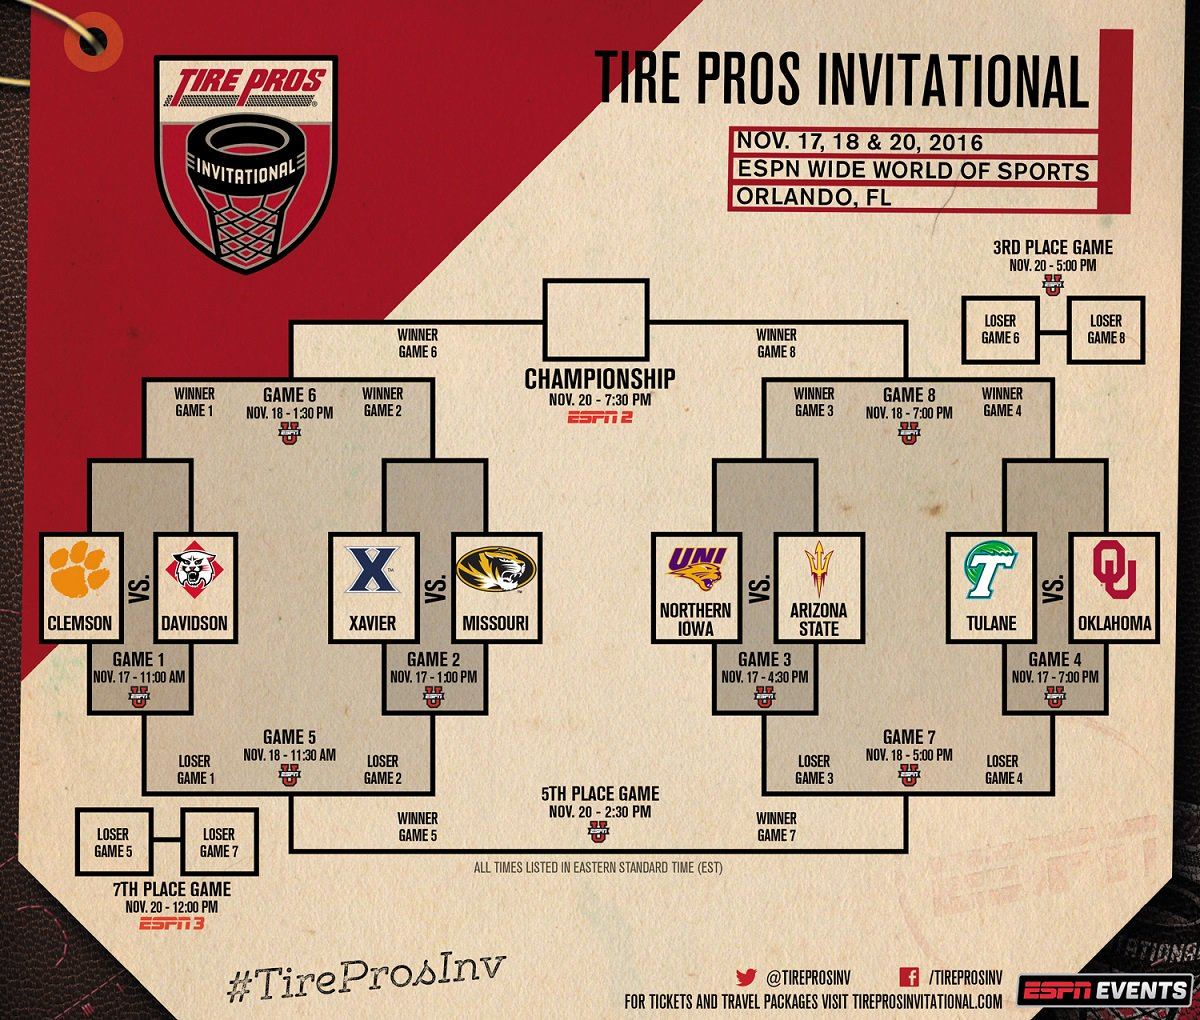 2016 Tire Pros Invitational Primer: Oklahoma And Xavier The Main Attractions (Updated)